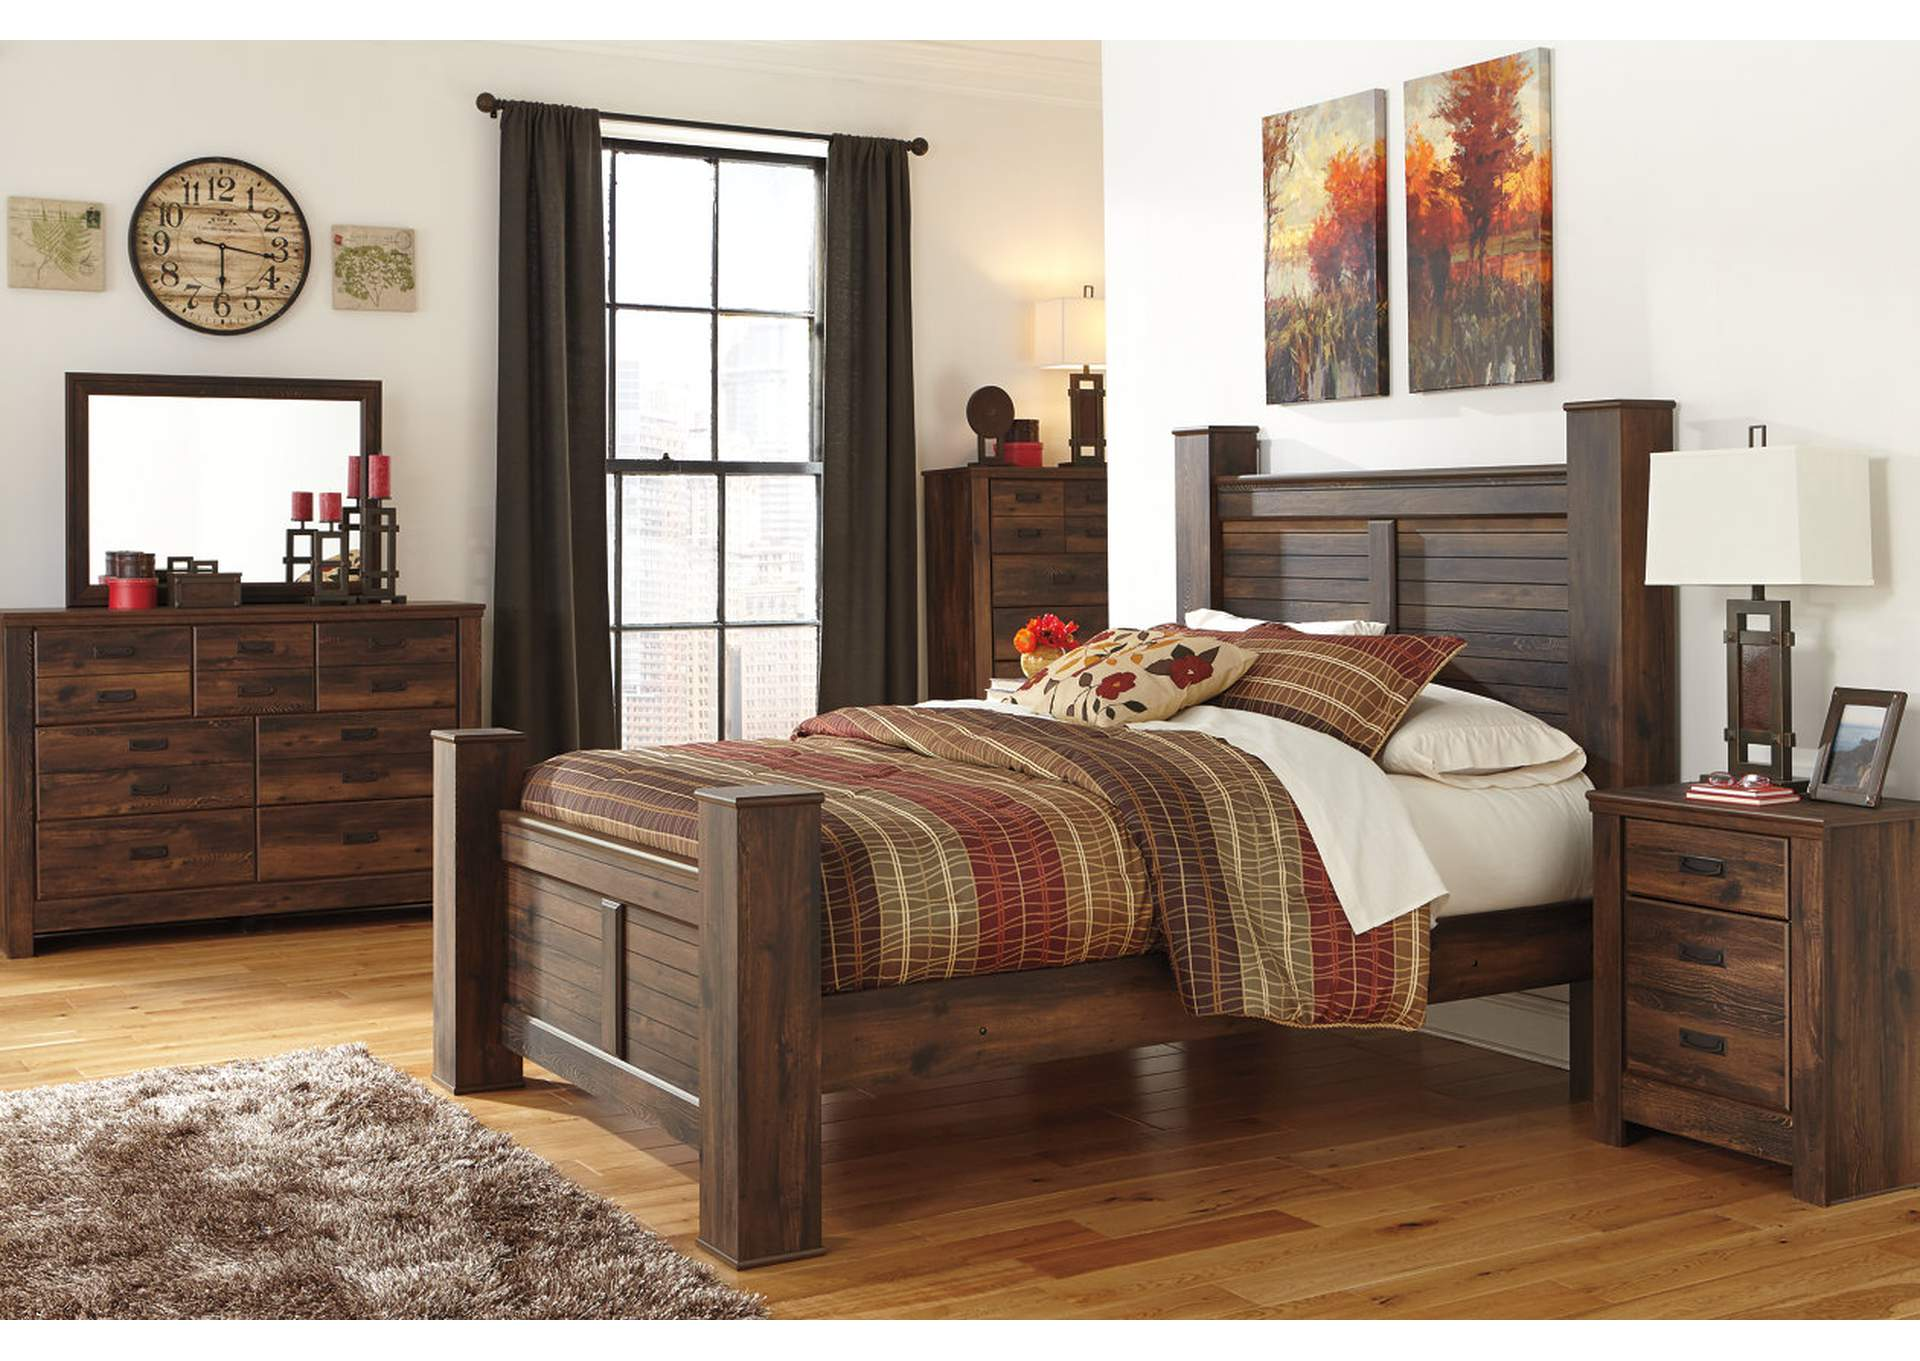 Quinden Queen Poster Bed w/Dresser & Mirror,Signature Design By Ashley